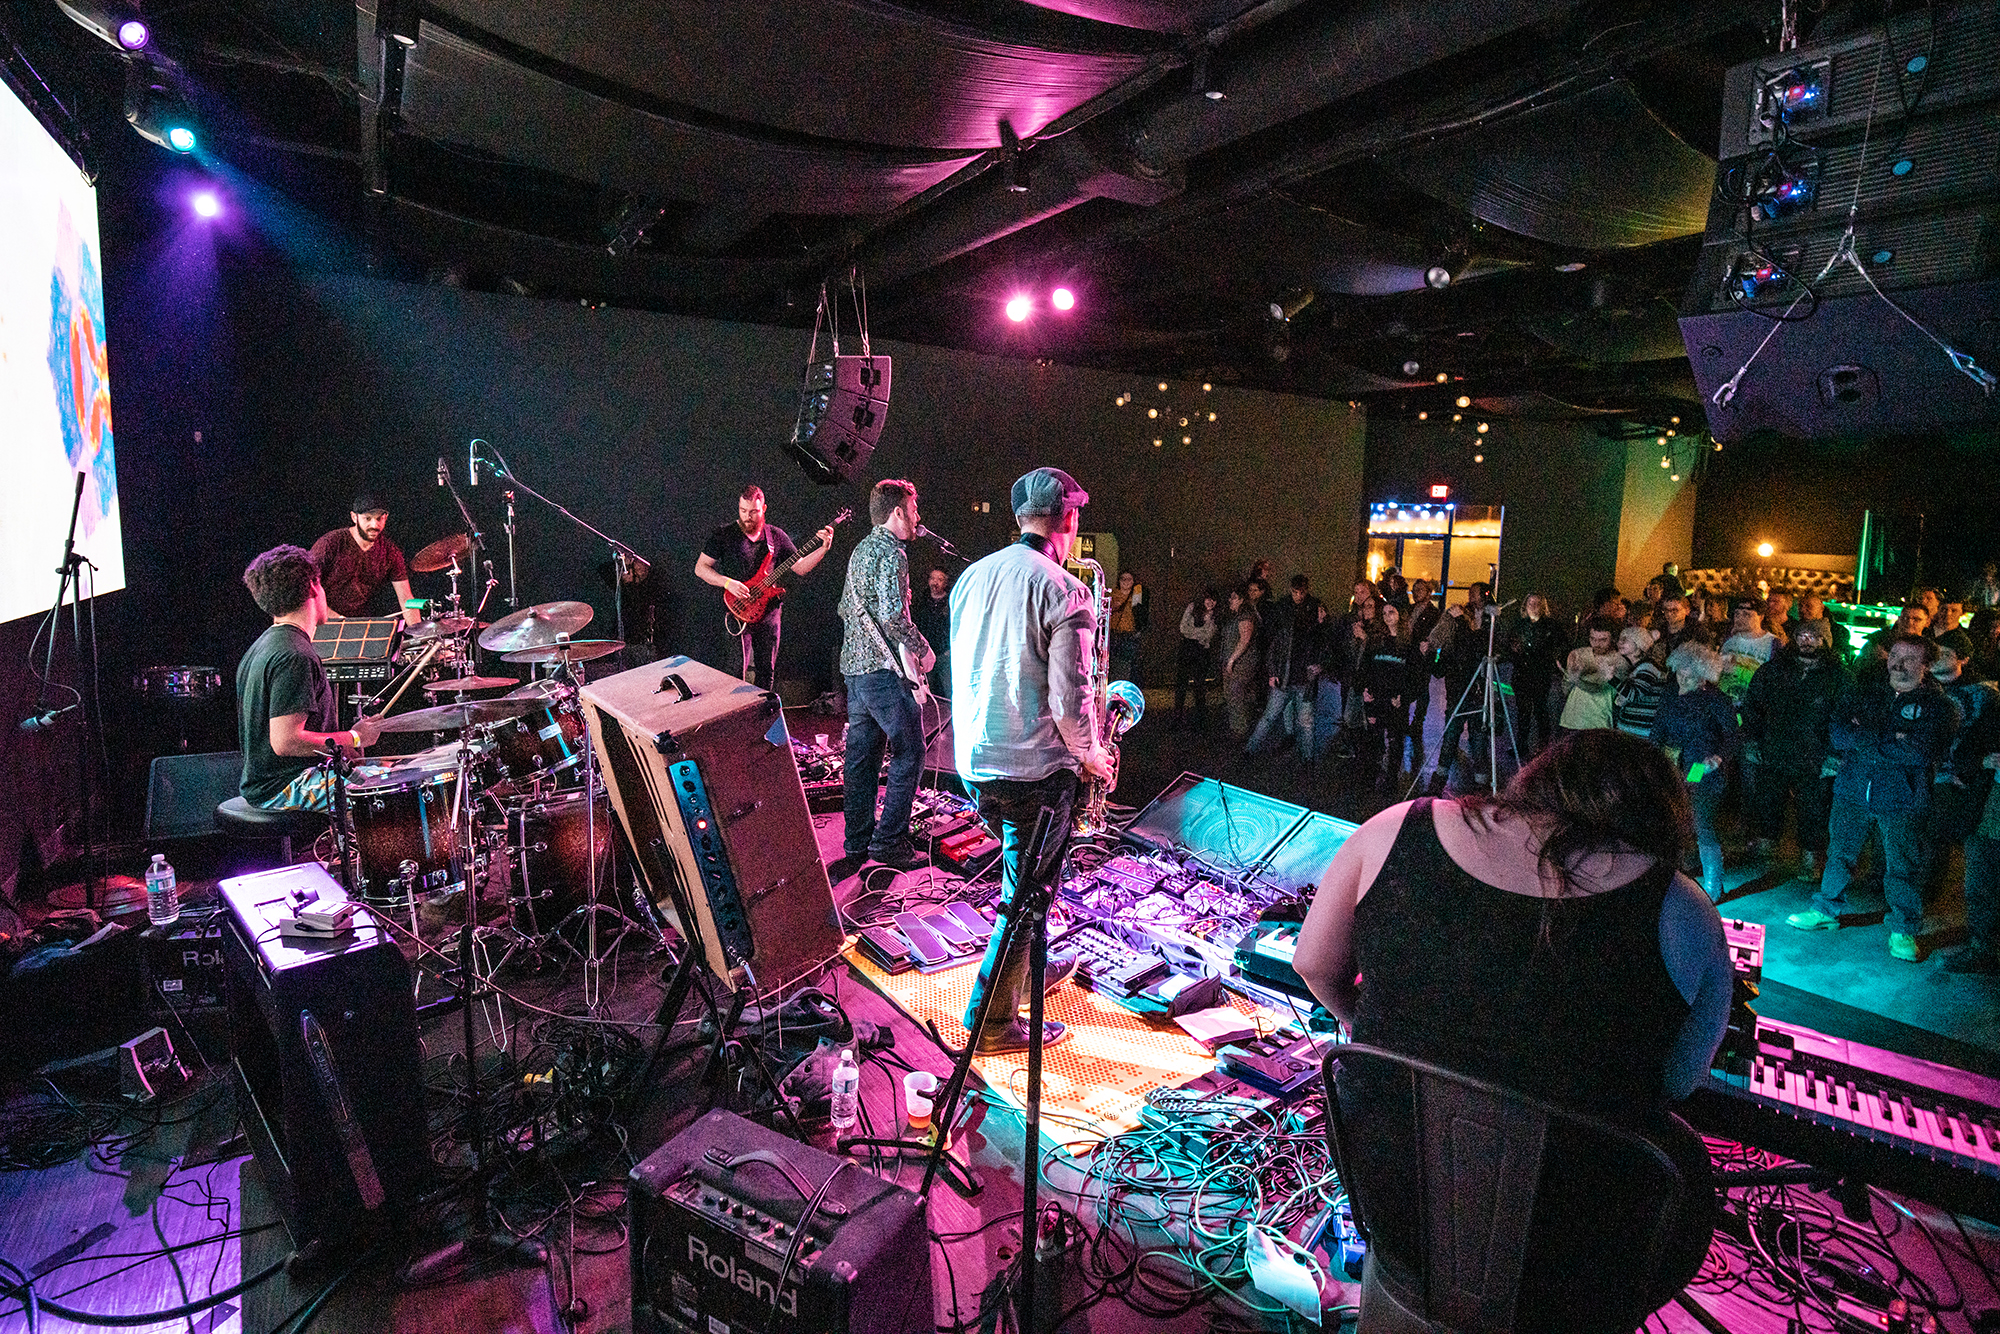 Ampevene Shares Pro-Shot Video of  Putnam Place Performance in Saratoga Springs, NY